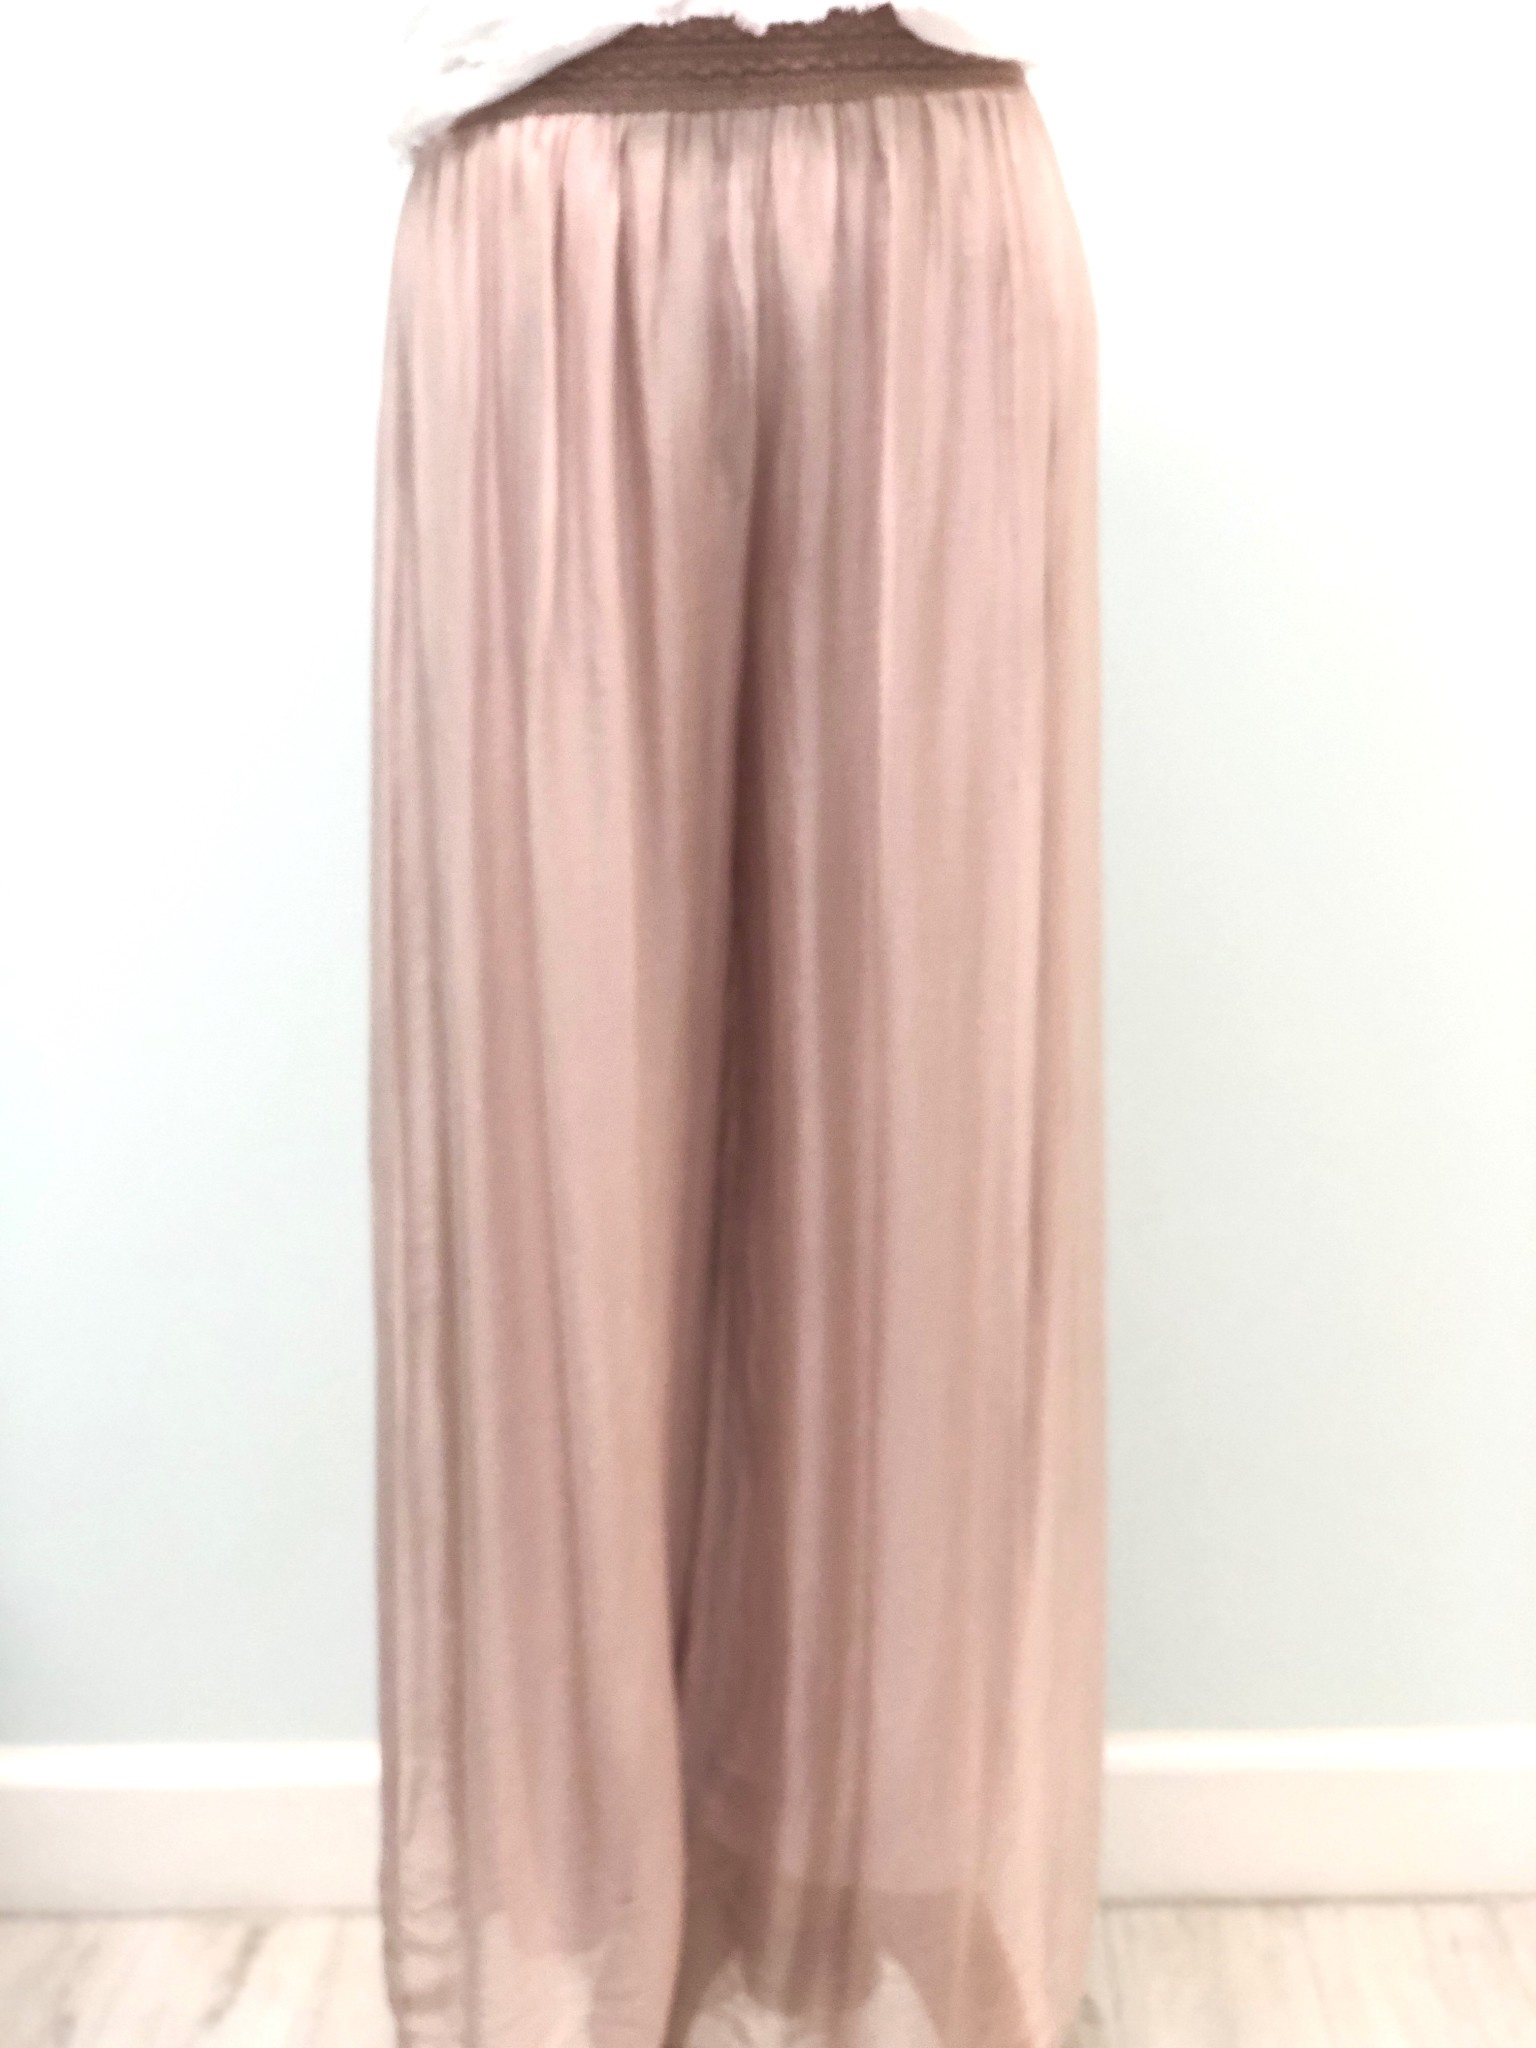 Pura Seta Elastic Blush Silk Lined Pants